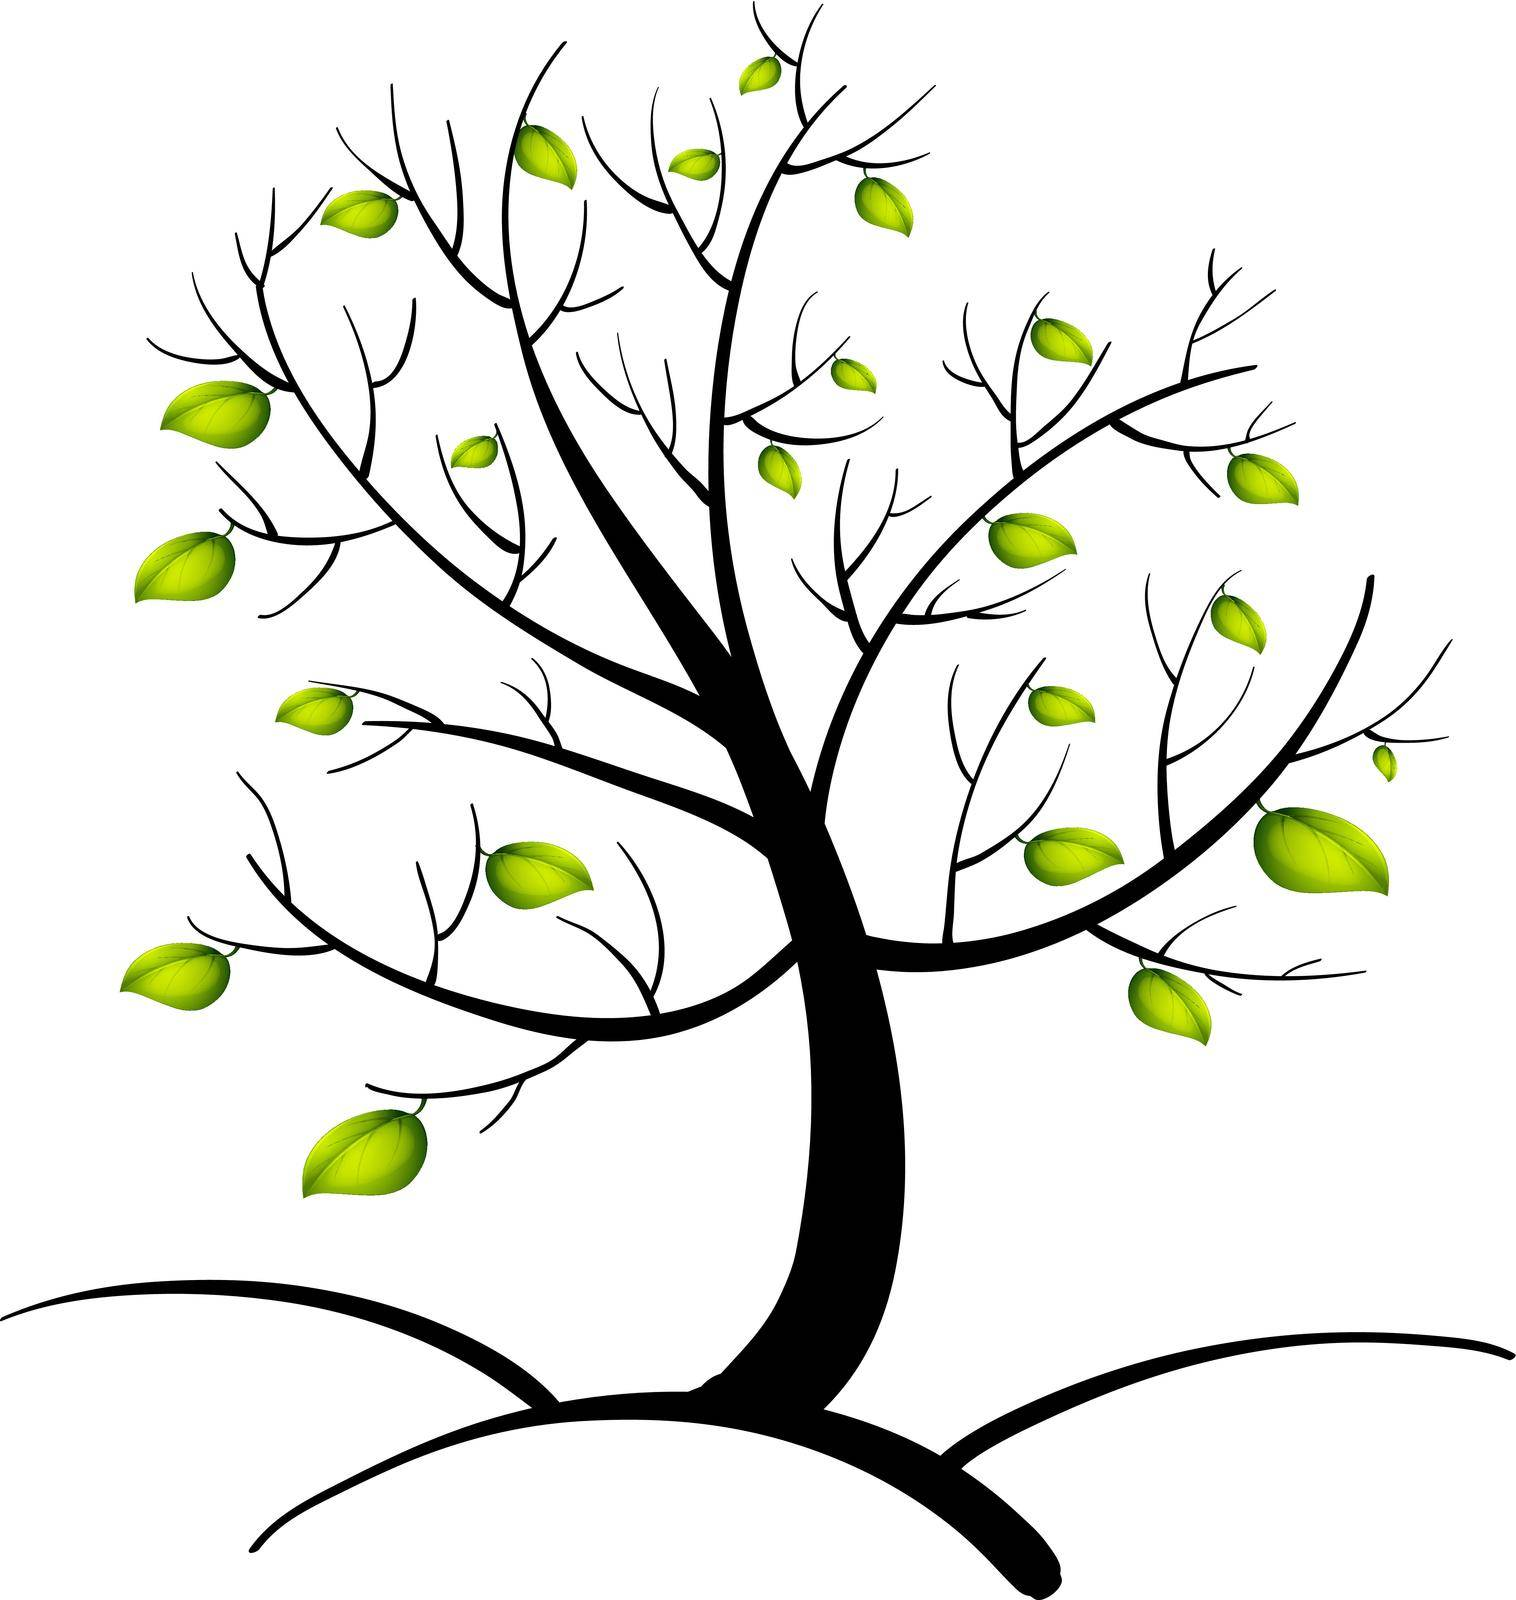 illustration, isolated, clipping path, tree, fall, spring - D37176504